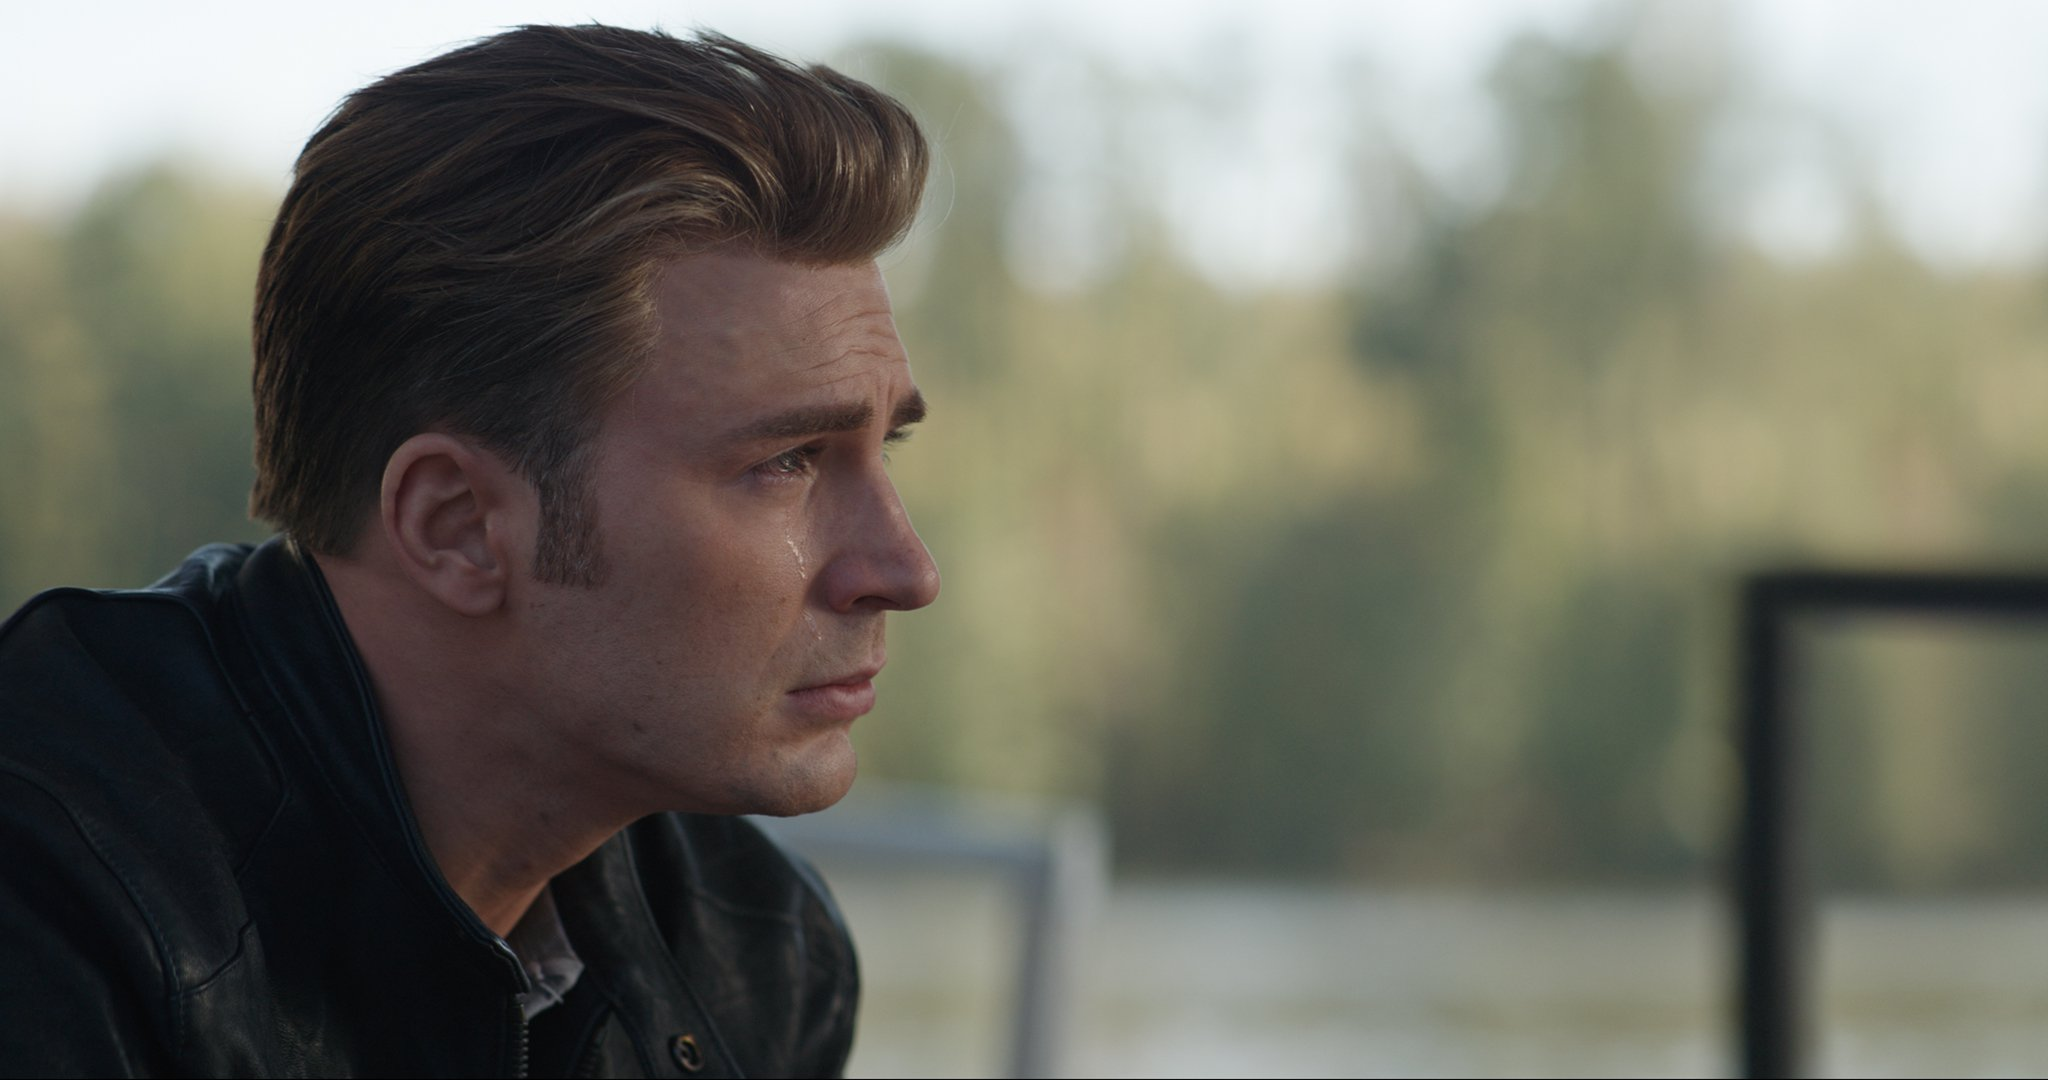 Captain America Endgame theory confirmed but leaves us with more questions than answers